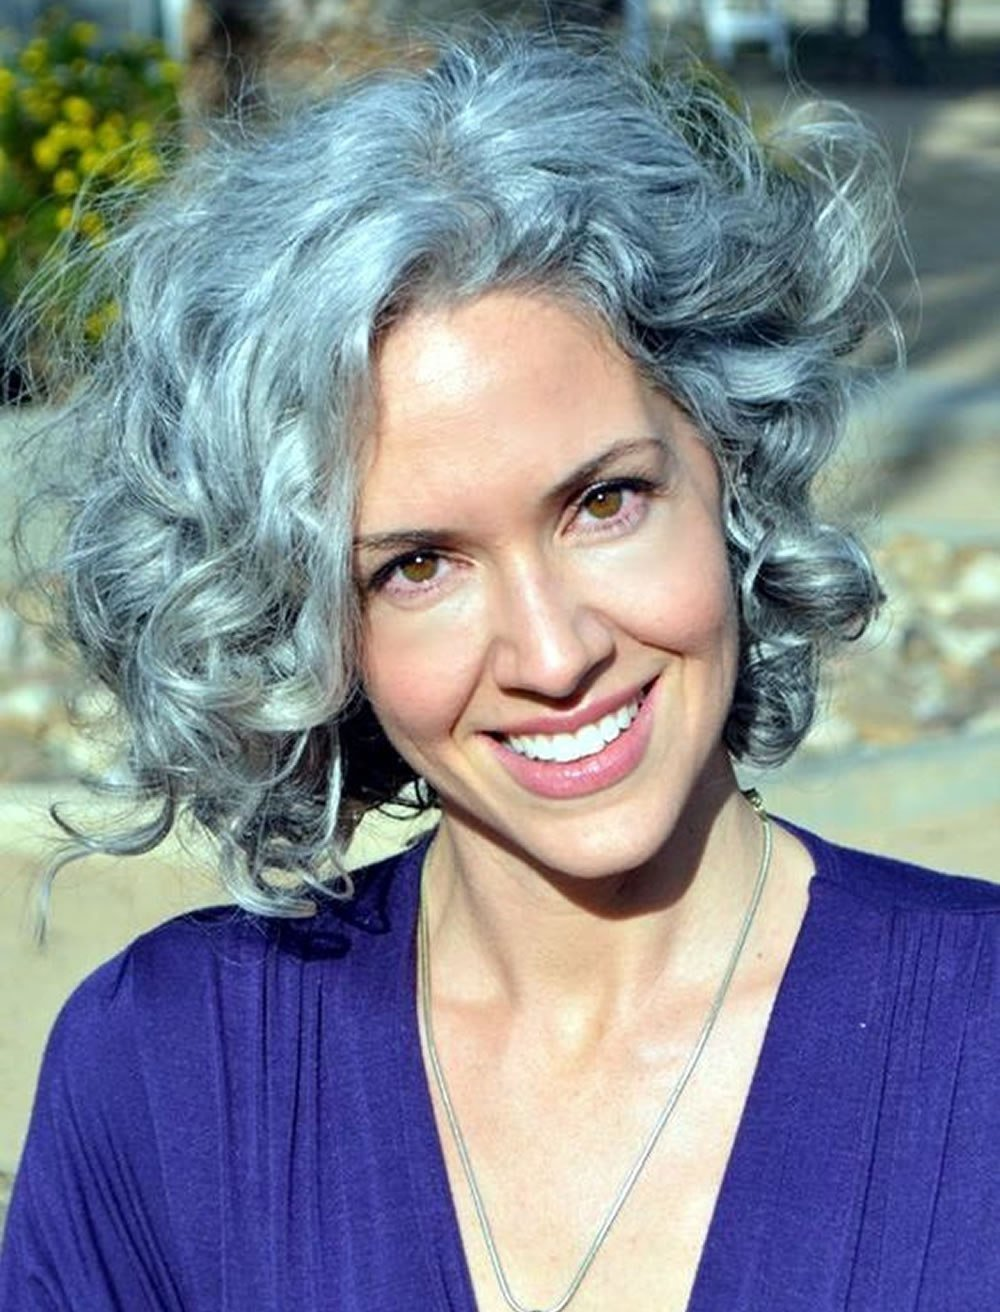 New Curly Short Hairstyles For Older Women Over 50 – Best Ideas With Pictures